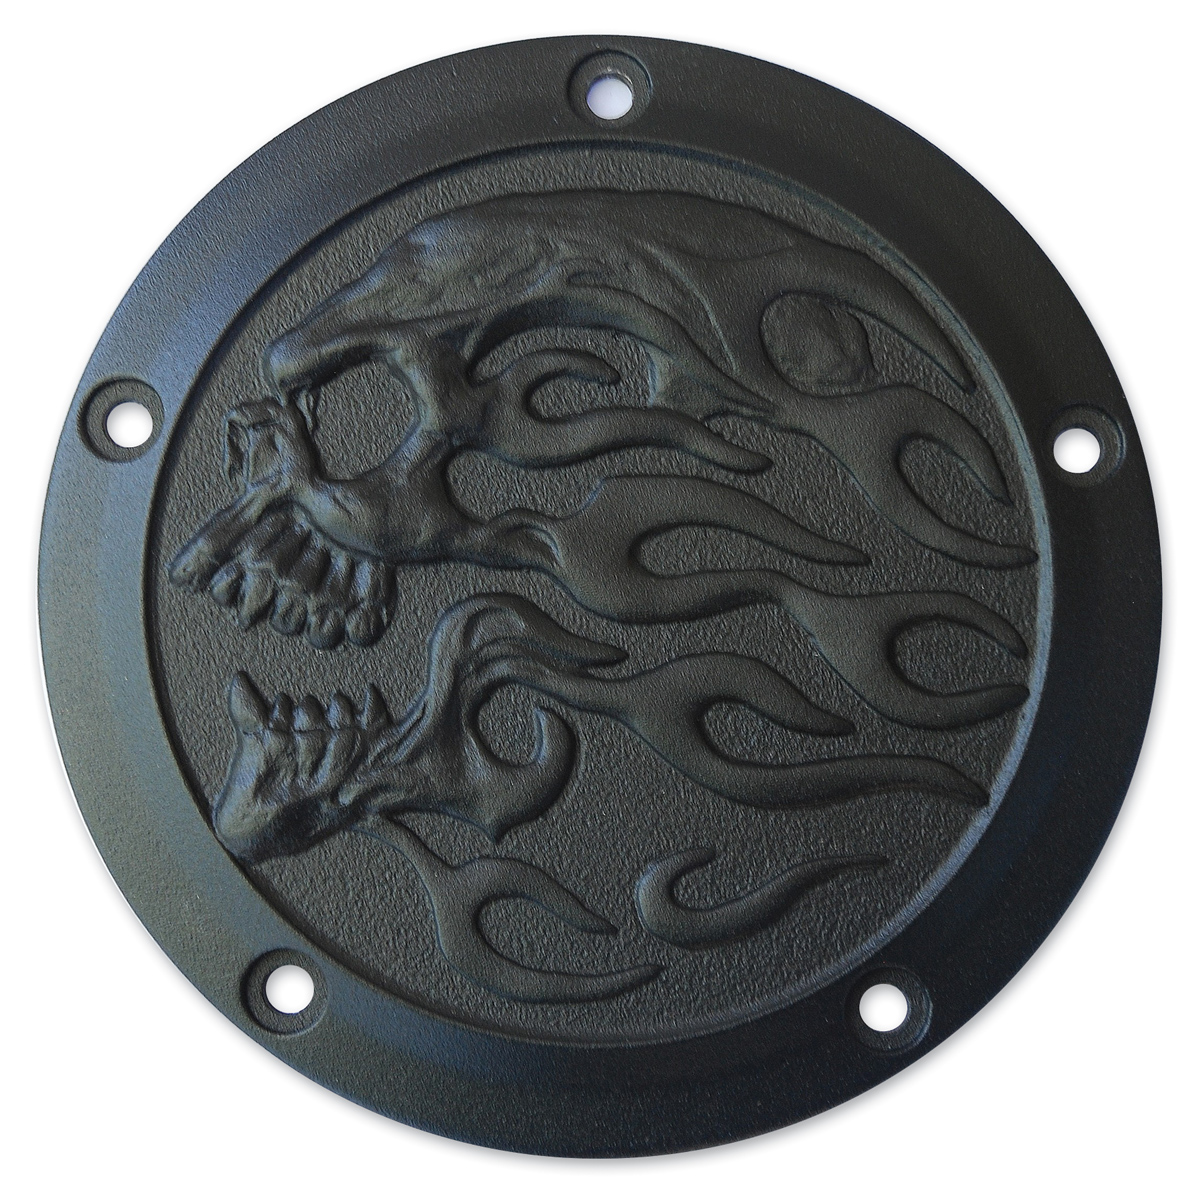 Chrome Dome Textured Black Flaming Skull Derby Cover